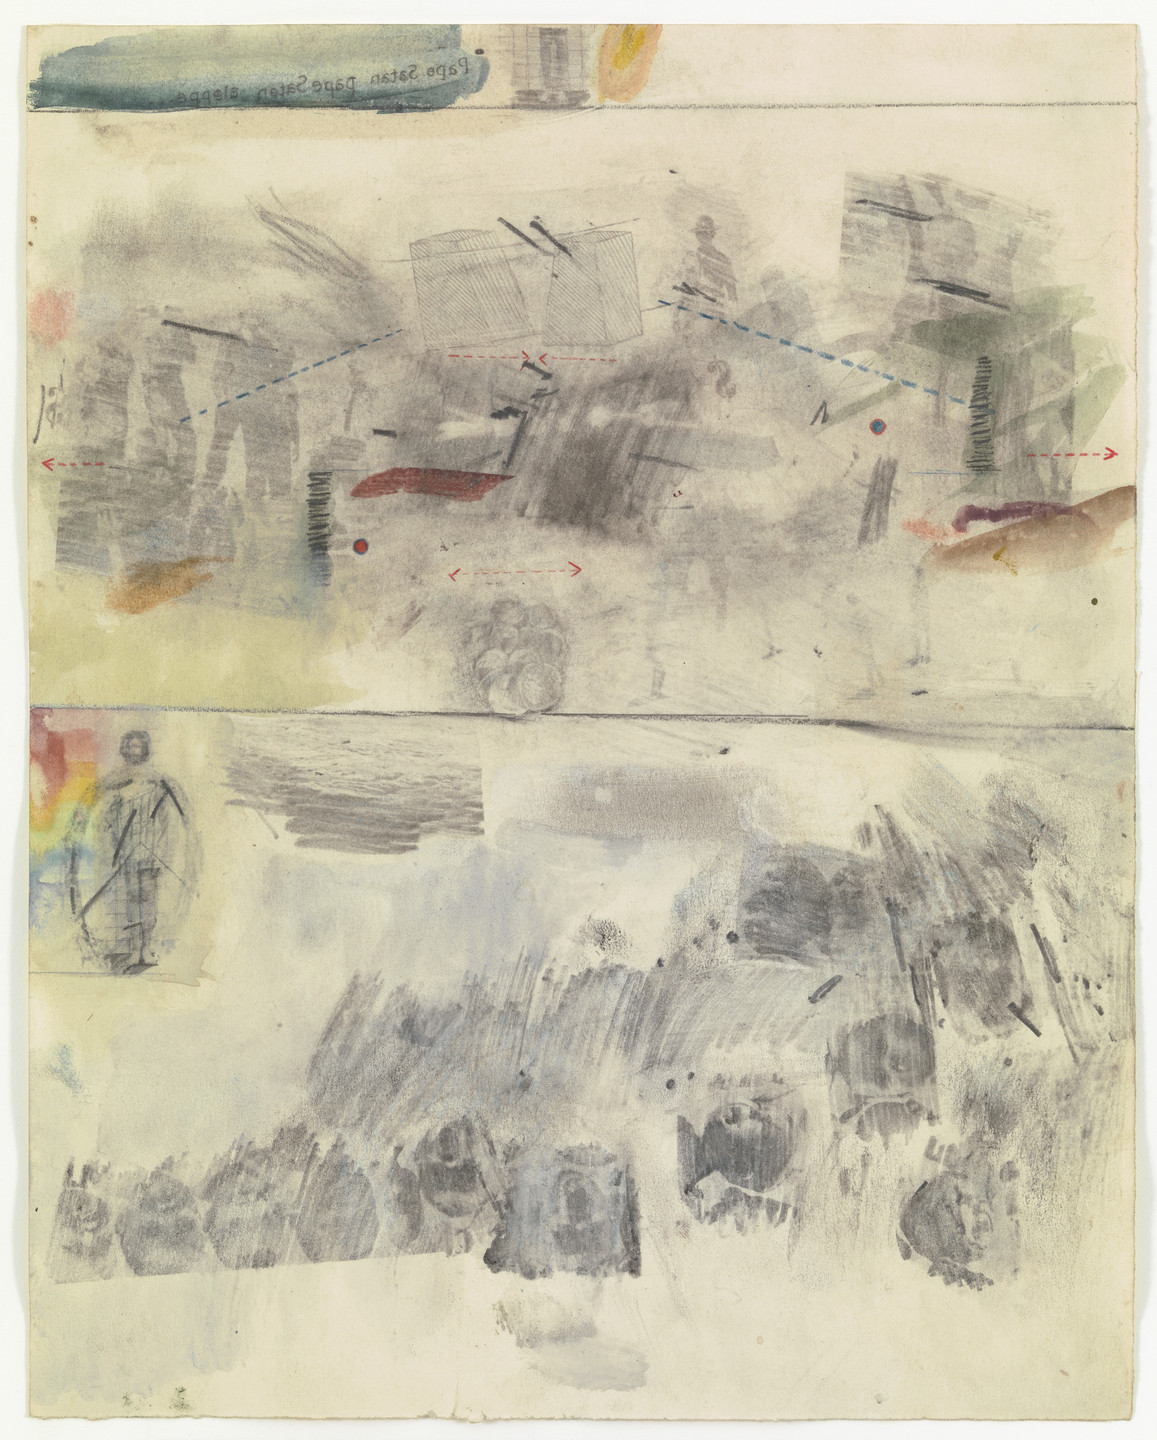 Robert Rauschenberg. Canto VII: Circle Four, The Hoarders and The Wasters; Circle Five, The Wrathful and The Sullen from the series Thirty-Four Illustrations for Dante's Inferno. (1959-60)